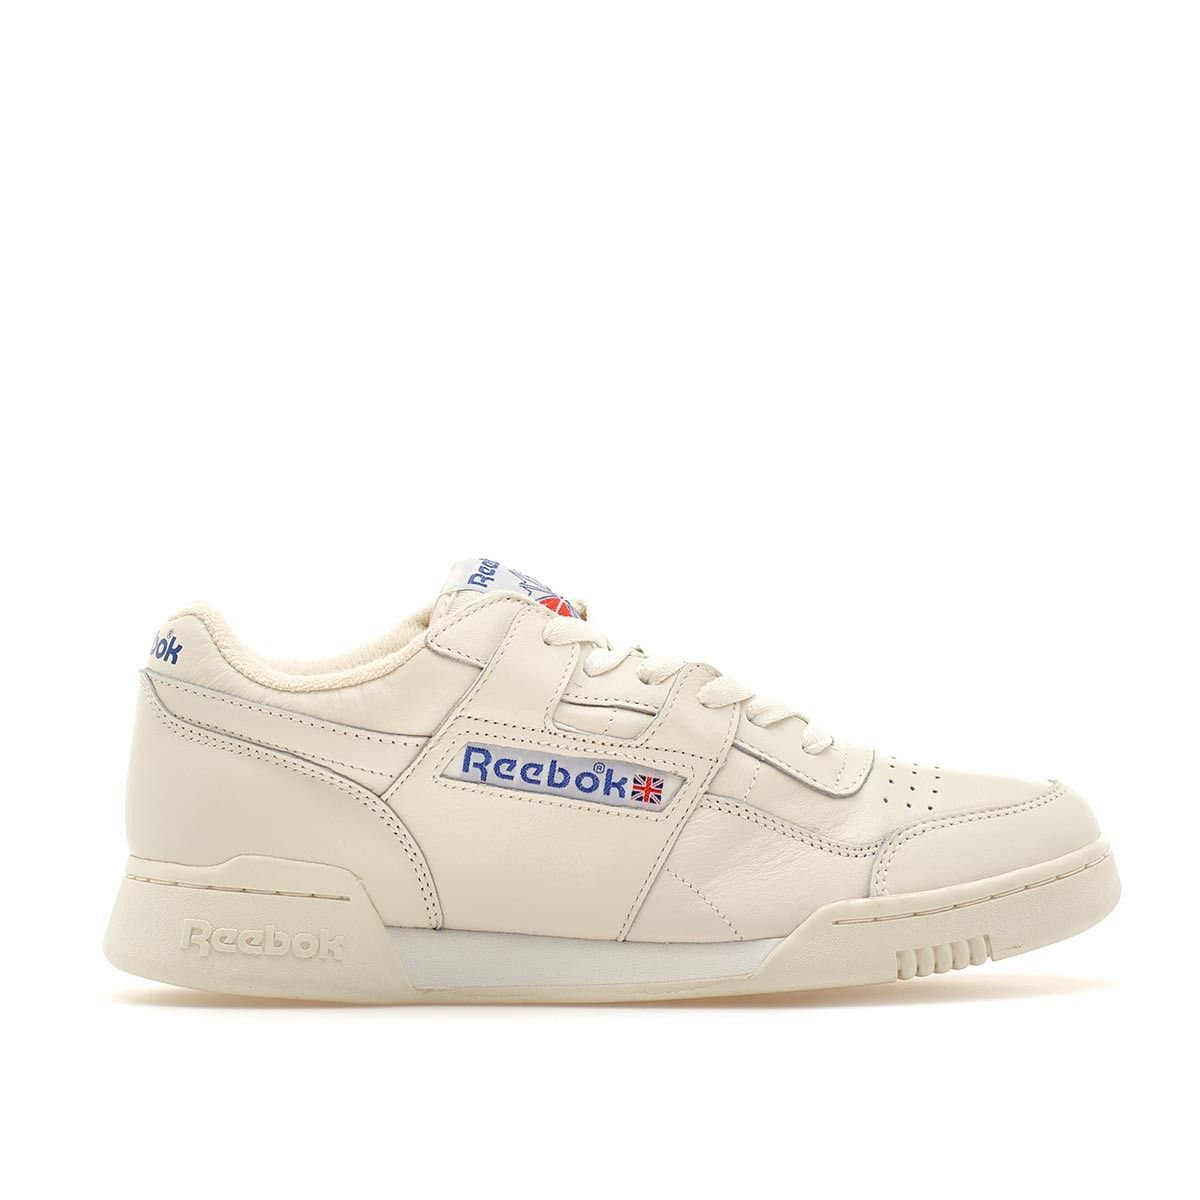 eb6c2378e31b0 Workout Plus Vintage from the S S2017 Reebok collection in chalk